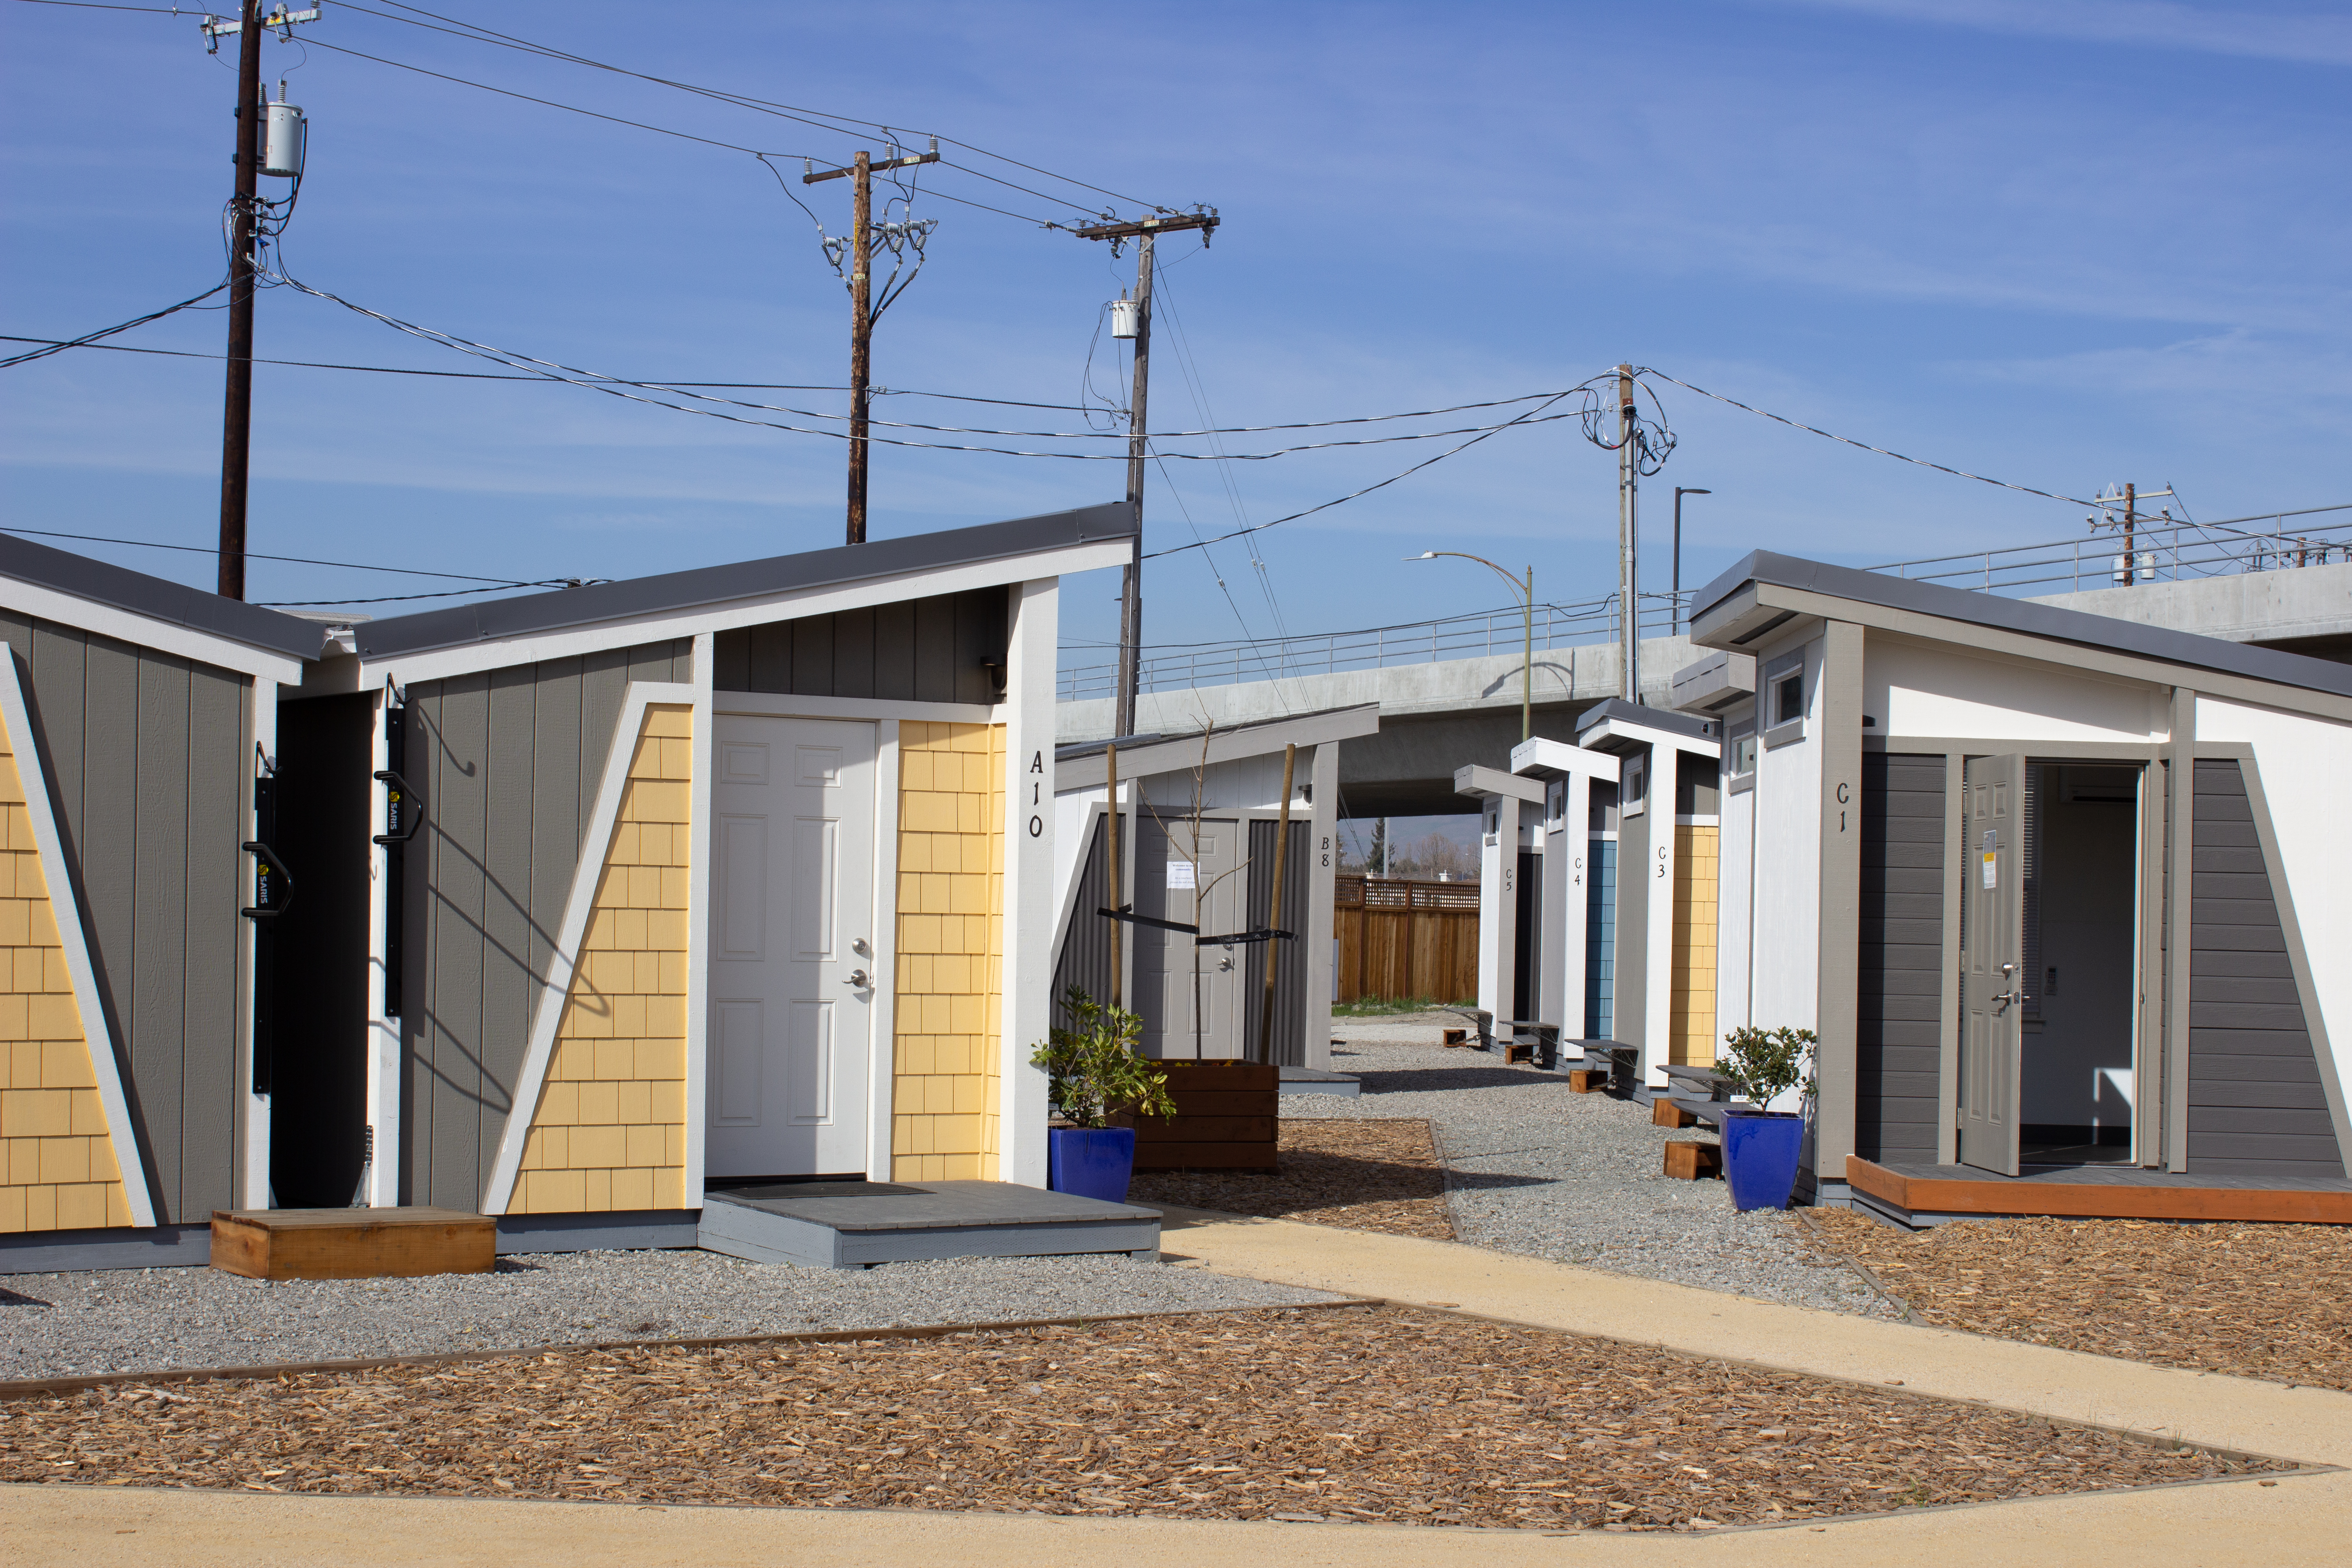 A series of small tiny homes with angled rooftops and yellow wood paneled facades.